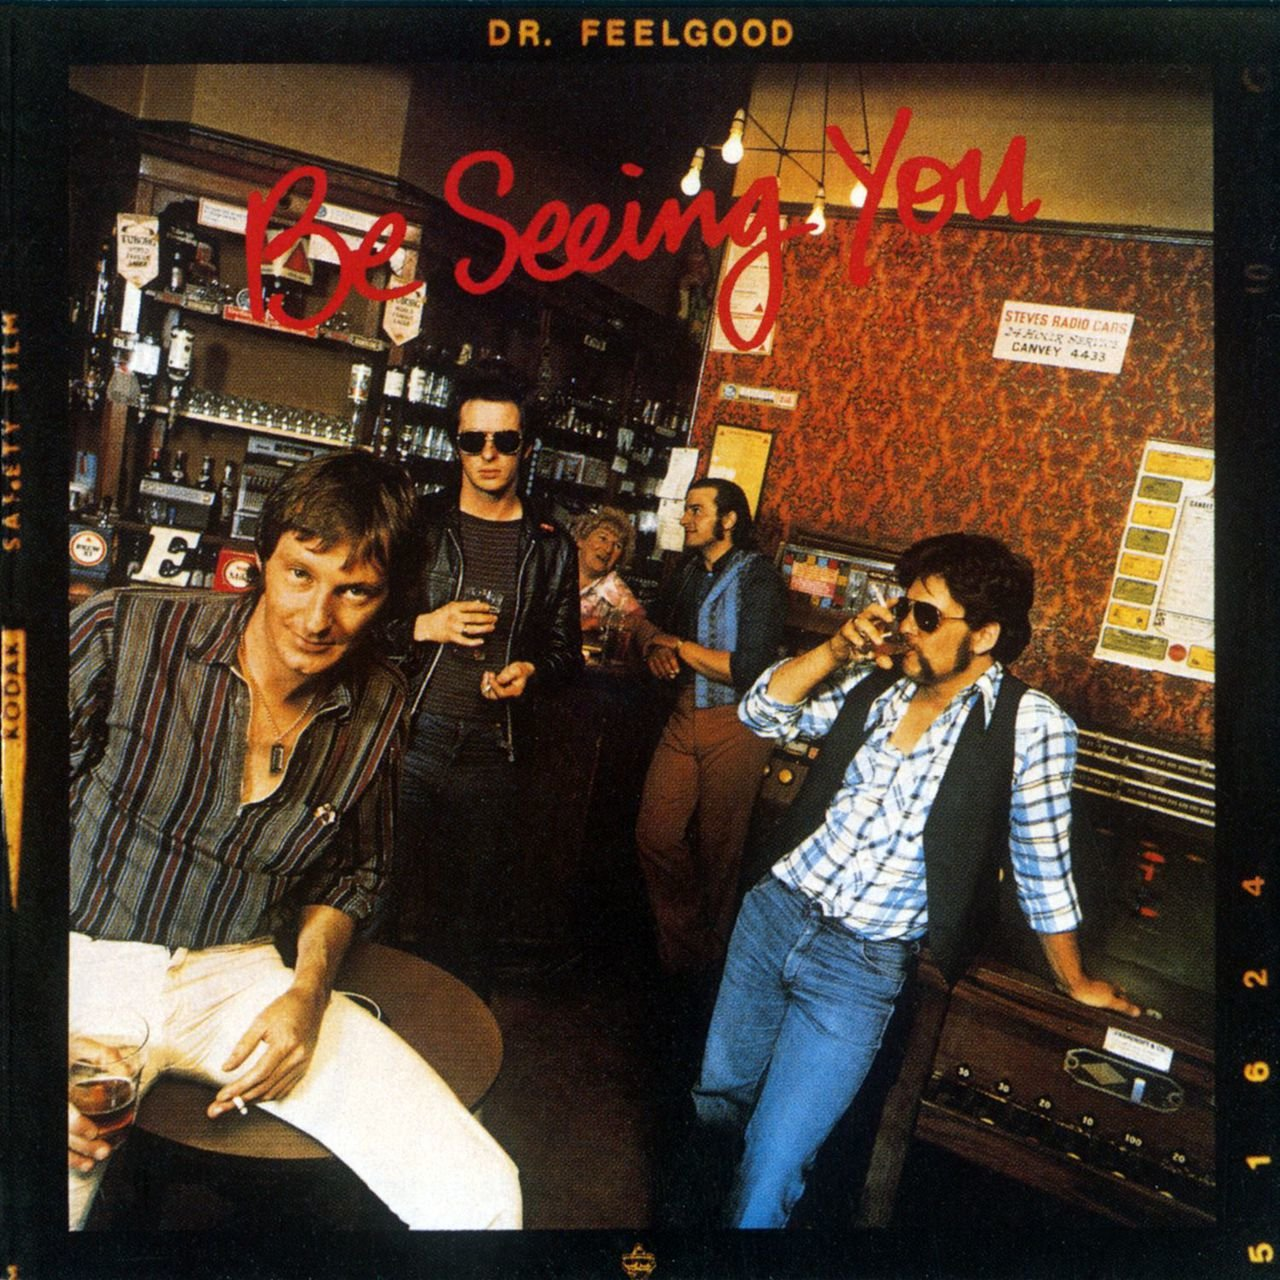 Dr. Feelgood's  Be Seeing You  LP